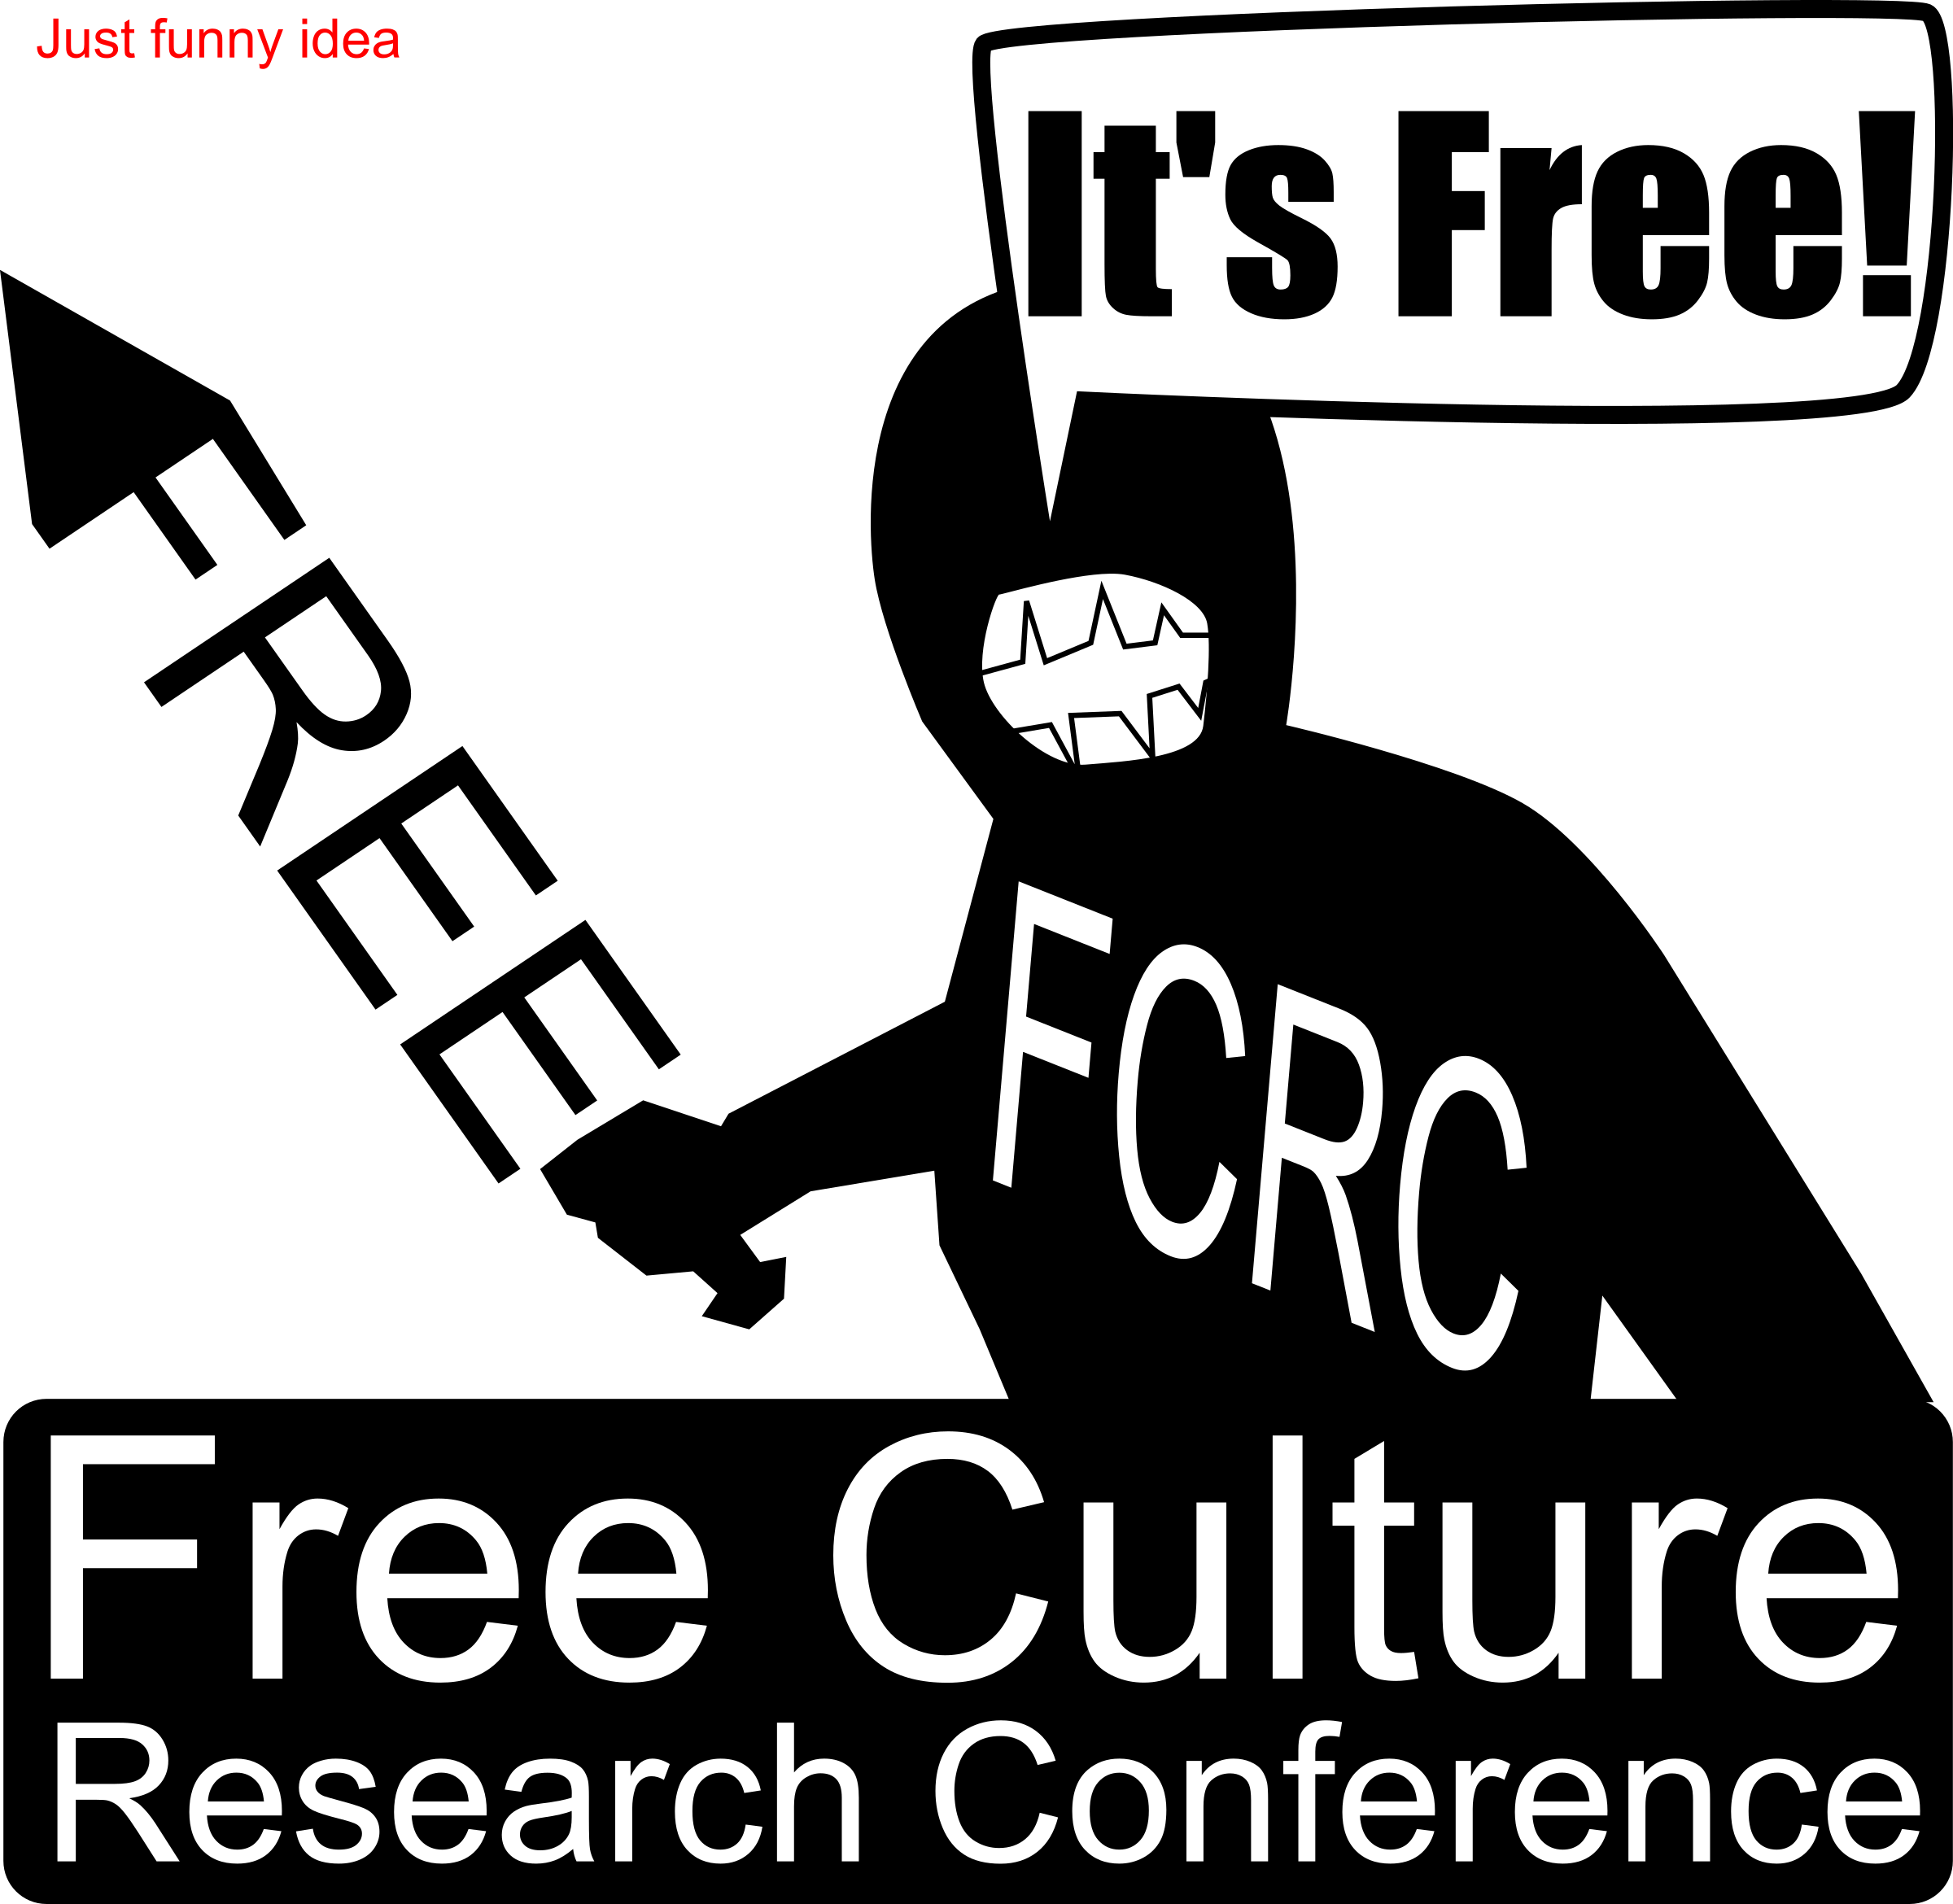 FCRC Funny Idea by aungkarns